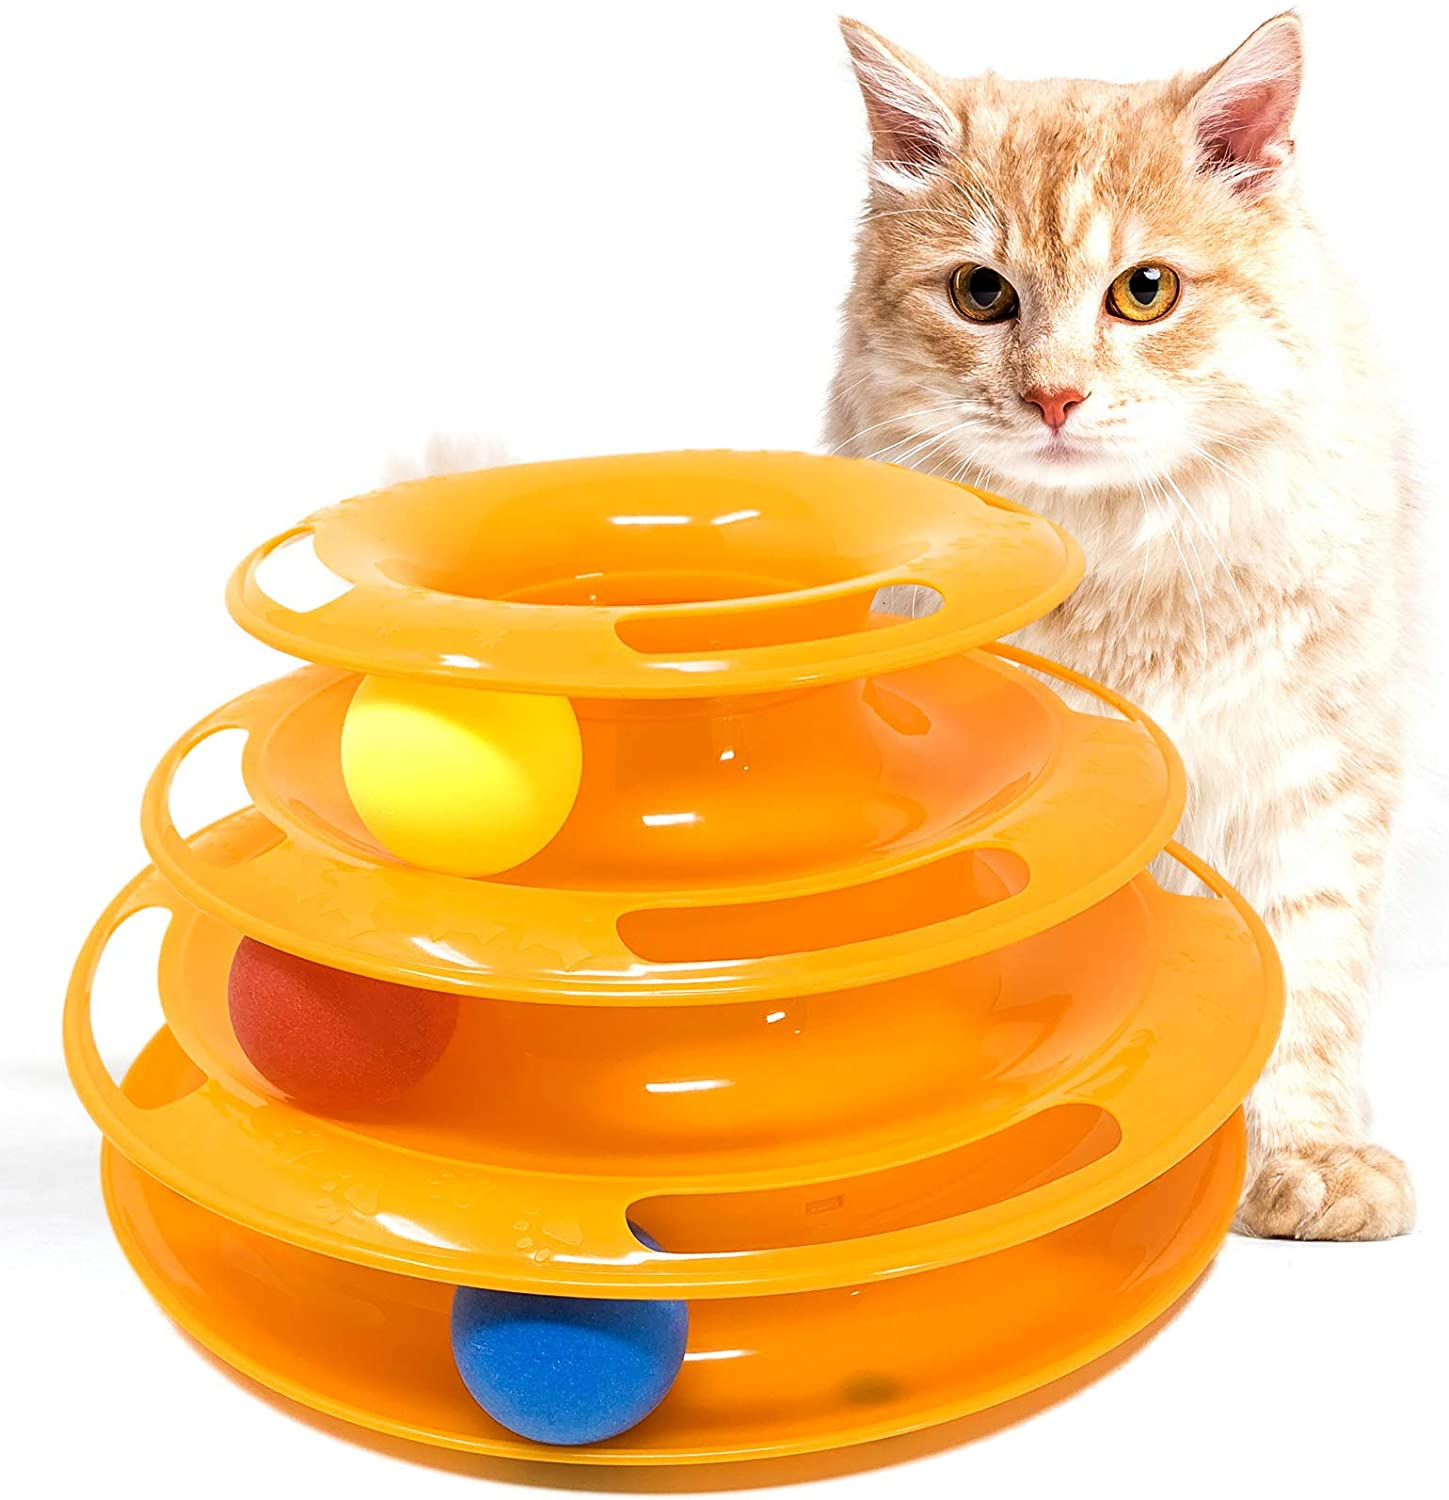 iPrimio Interactive Cat Toy – 3 Level Track Tower with Roller Balls – Strong Holding Grip – Improve Mental Simulation and Physical Play